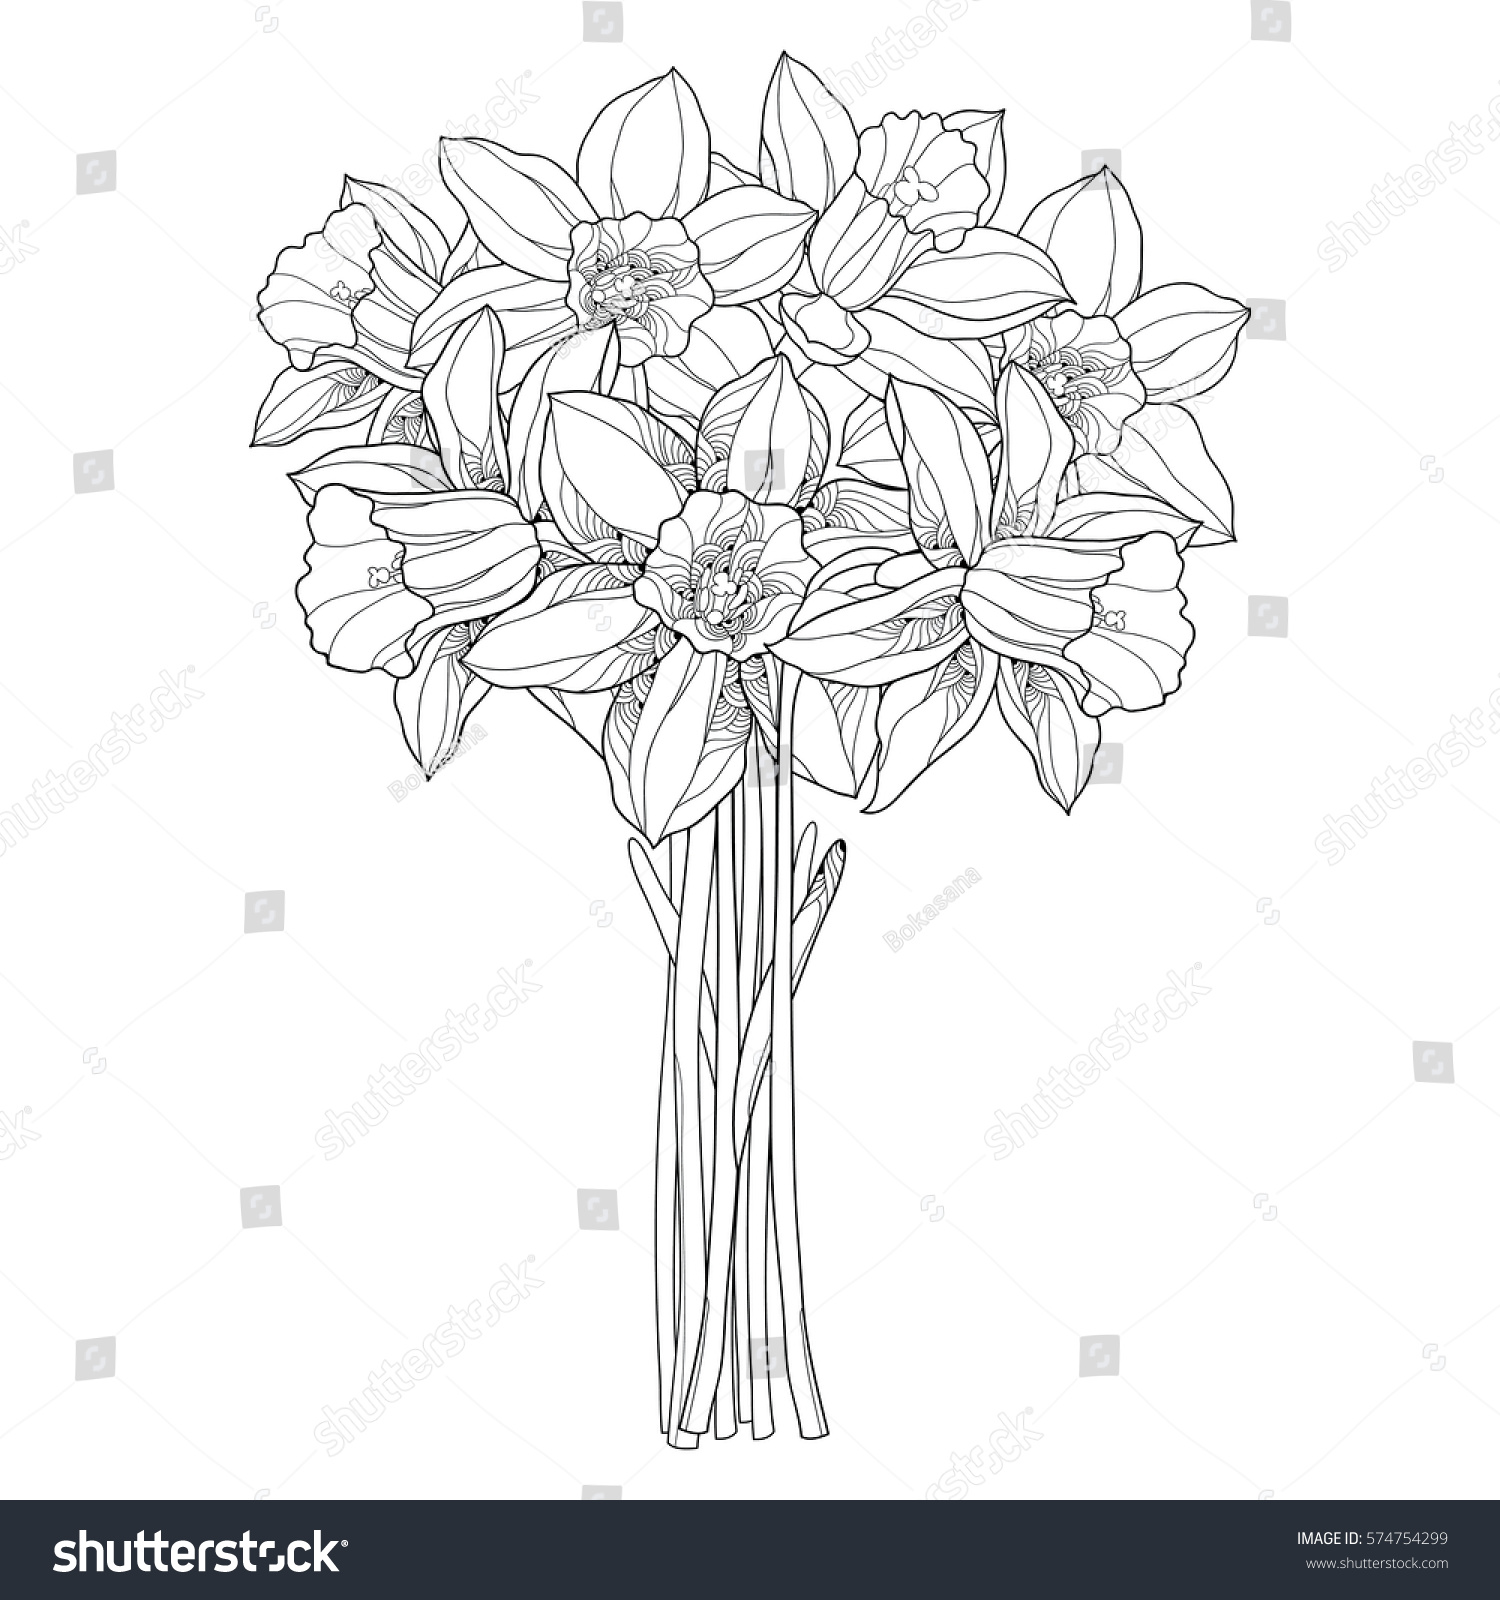 vector bouquet outline narcissus daffodil flowers stock vector